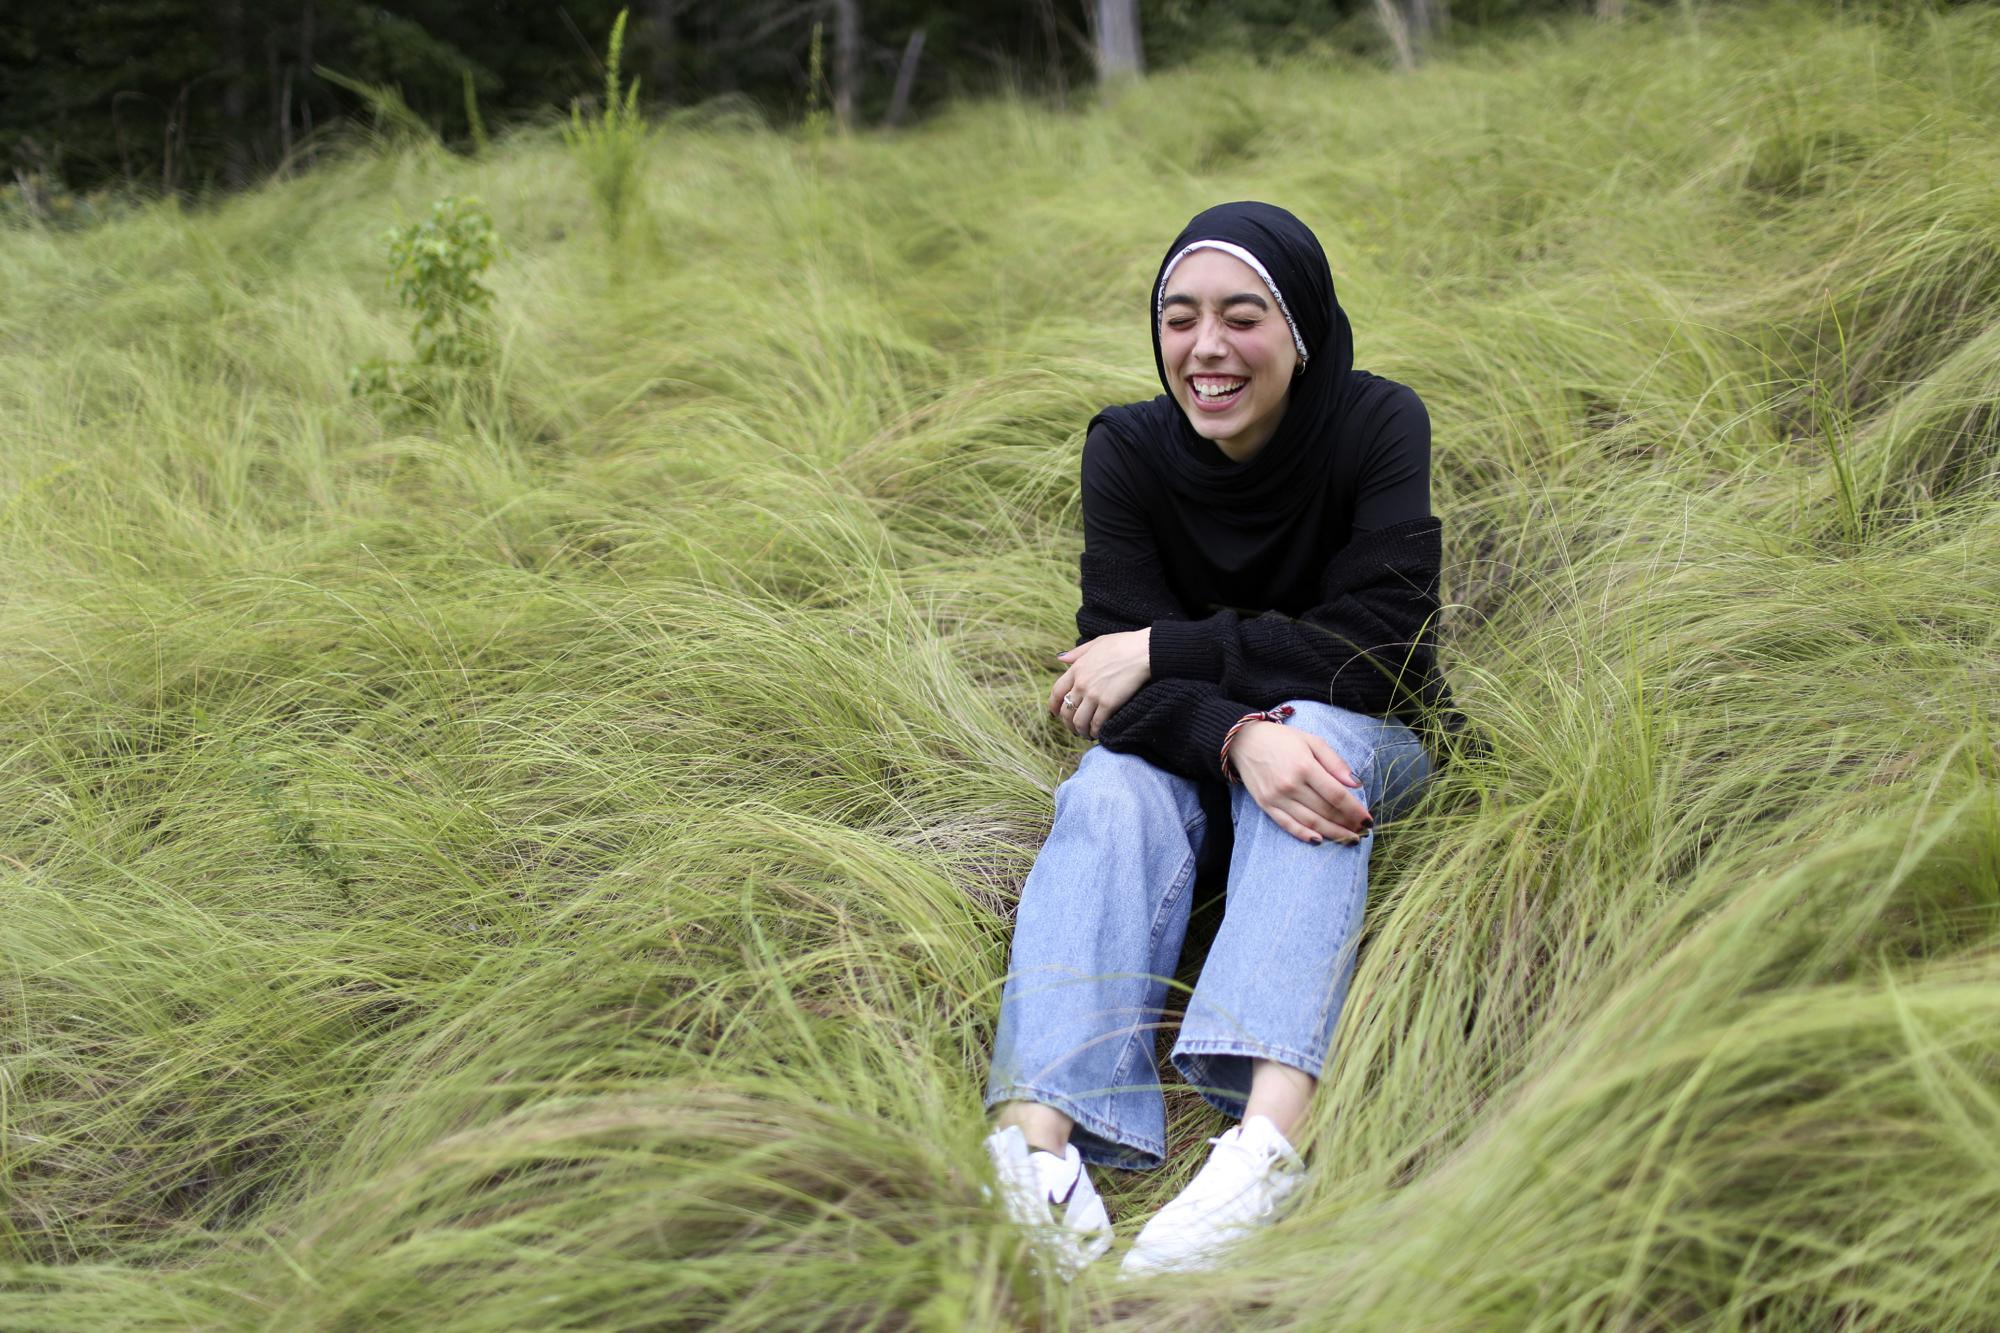 Amirah Ahmed, 17, outside of her home in Fredericksburg, Va., on Sunday, Aug. 15, 2021. Born after the 9/11 attacks, Ahmed feels she was thrust into a struggle not of her making. After 9/11, many young American Muslims have found ways to fight back against bias, to organize and craft nuanced personal narratives about their identities. (AP Photo/Jessie Wardarski)